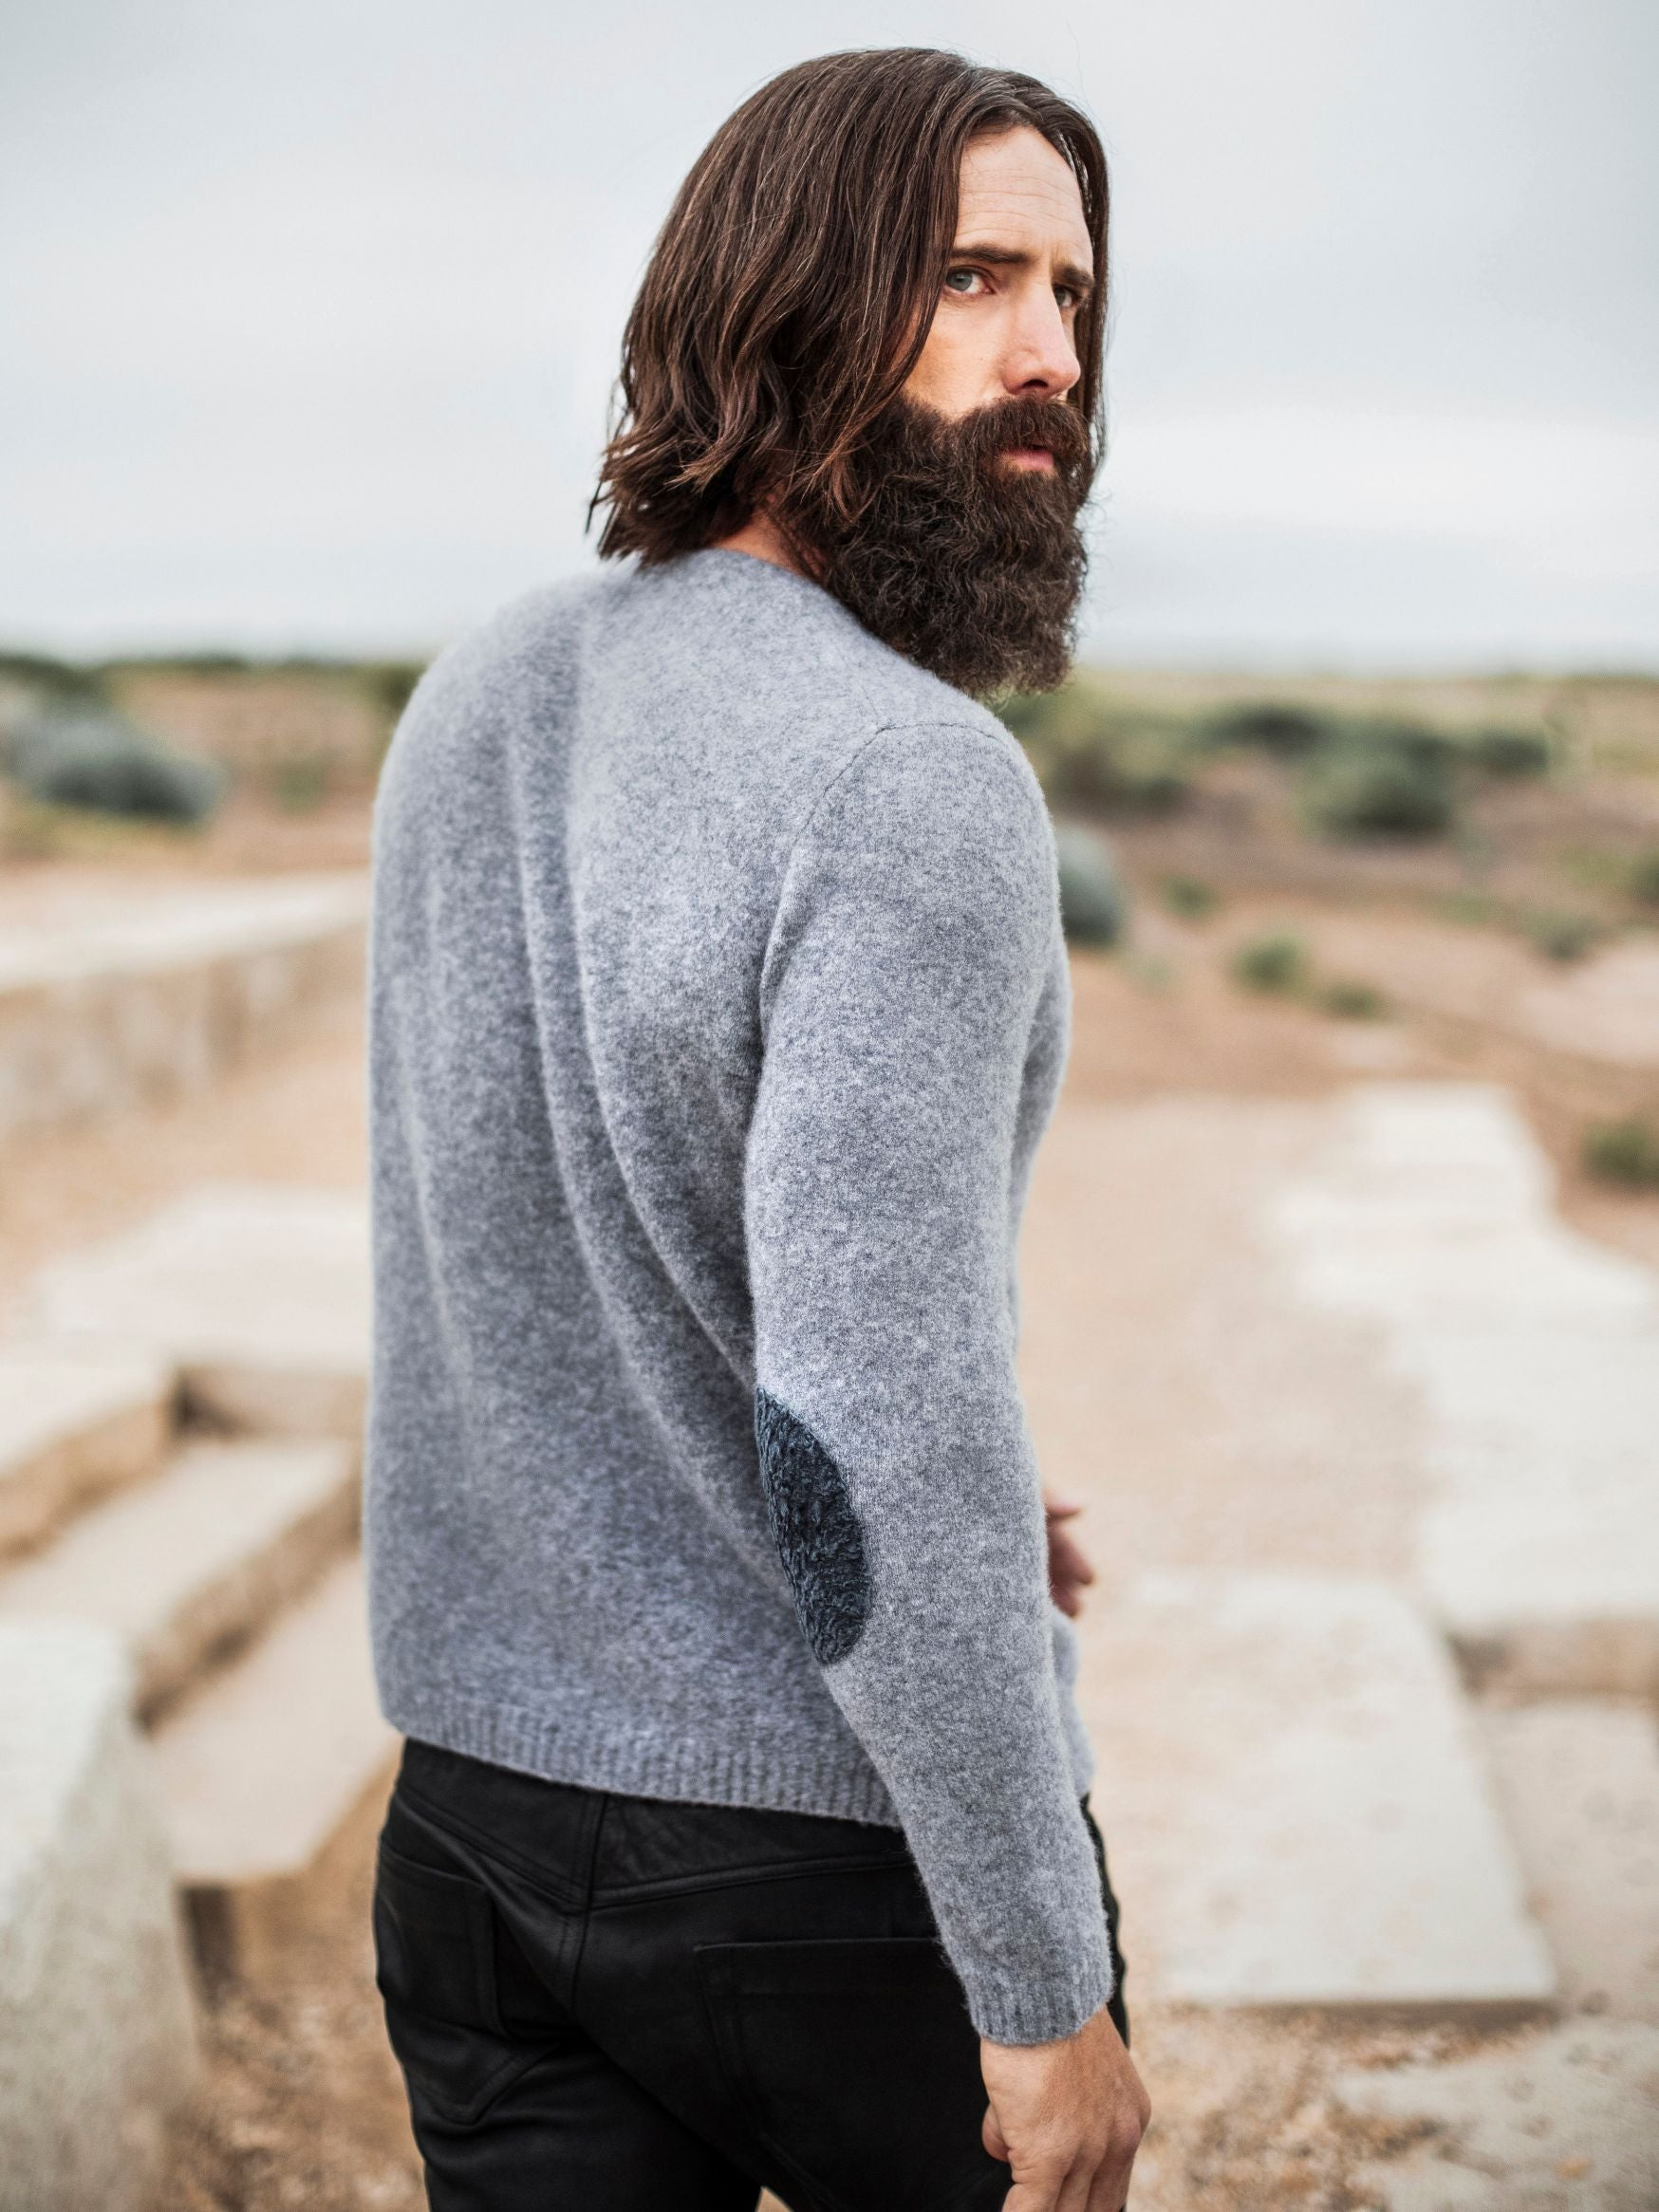 Like fast-moving cirrus clouds, cashmere fleece defies gravity